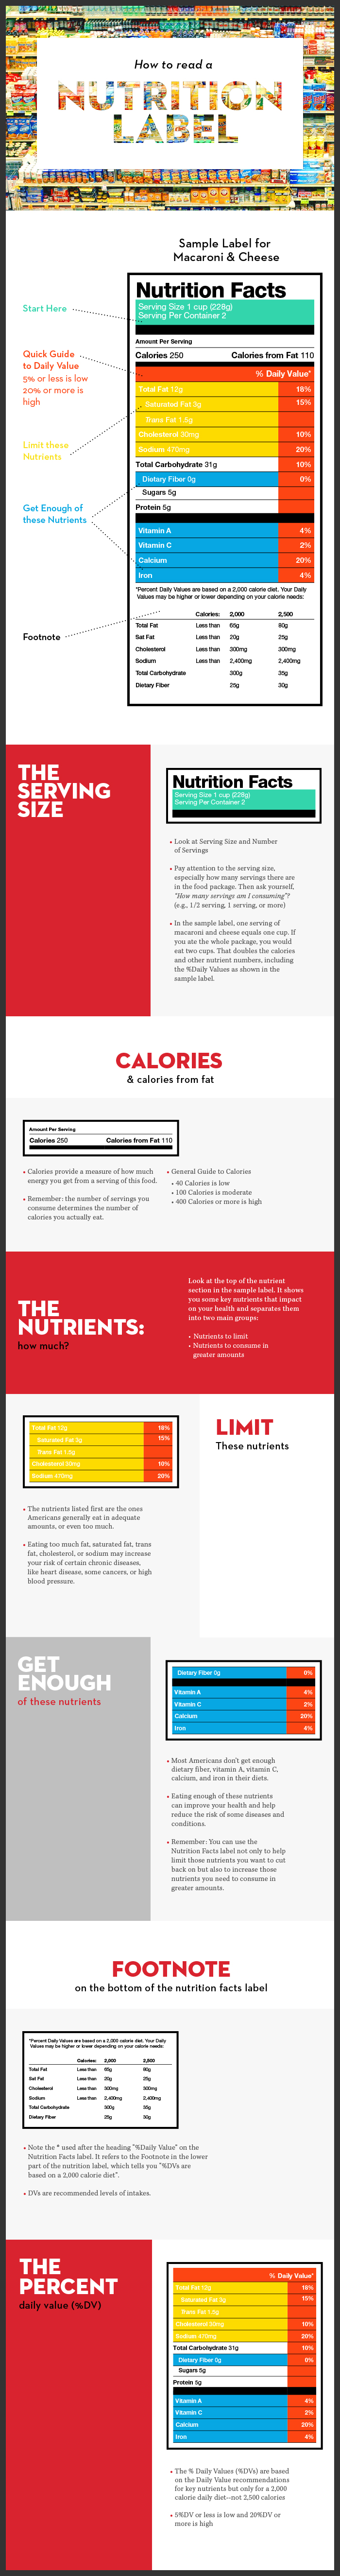 How to Read a Nutrition Label Infographic